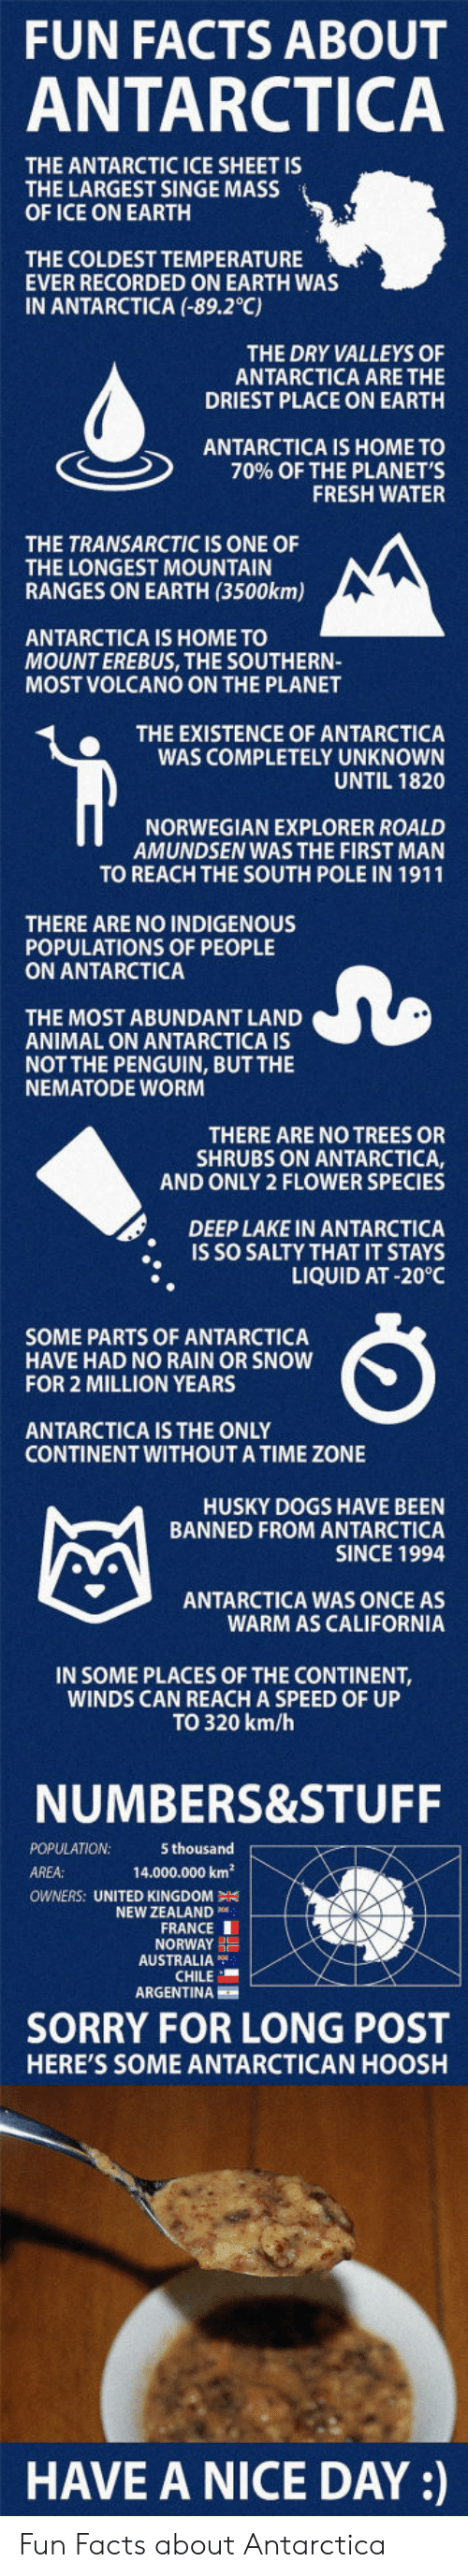 singe: FUN FACTS ABOUT  ANTARCTICA  THE ANTARCTIC ICE SHEET IS  THE LARGEST SINGE MASS  OF ICE ON EARTH  THE COLDEST TEMPERATURE  EVER RECORDED ON EARTH WAS  IN ANTARCTICA (-89.2°C)  THE DRY VALLEYS OF  ANTARCTICA ARE THE  DRIEST PLACE ON EARTH  ANTARCTICA IS HOME TO  70% OF THE PLANET'S  FRESH WATER  THE TRANSARCTIC IS ONE OF  THE LONGEST MOUNTAIN  RANGES ON EARTH (3500km)  ANTARCTICA IS HOME TO  MOUNT EREBUS, THE SOUTHERN-  MOST VOLCANO ON THE PLANET  THE EXISTENCE OF ANTARCTICA  WAS COMPLETELY UNKNOWN  UNTIL 1820  NORWEGIAN EXPLORER ROALD  AMUNDSEN WAS THE FIRST MAN  TO REACH THE SOUTH POLE IN 1911  THERE ARE NO INDIGENOUS  POPULATIONS OF PEOPLE  ON ANTARCTICA  THE MOST ABUNDANT LAND  ANIMAL ON ANTARCTICA IS  NOT THE PENGUIN, BUT THE  NEMATODE WOR  THERE ARE NO TREES OR  SHRUBS ON ANTARCTICA,  AND ONLY 2 FLOWER SPECIES  DEEP LAKE IN ANTARCTICA  IS SO SALTY THAT IT STAYS  LIQUID AT -20°C  SOME PARTS OF ANTARCTICA  HAVE HAD NO RAIN OR SNOW  FOR 2 MILLION YEARS  ANTARCTICA IS THE ONLY  CONTINENT WITHOUTA TIME ZONE  HUSKY DOGS HAVE BEEN  BANNED FROM ANTARCTICA  SINCE 1994  ANTARCTICA WAS ONCE AS  WARM AS CALIFORNIA  IN SOME PLACES OF THE CONTINENT,  WINDS CAN REACH A SPEED OF UP  TO 320 km/h  NUMBERS&STUFF  POPULATION  AREA:  5 thousand  14.000.000 km2  OWNERS: UNITED KINGDOM  NEW ZEALAND  FRANCE I  NORWAY  AUSTRALIA  CHILE  ARGENTINA  SORRY FOR LONG POST  HERE'S SOME ANTARCTICAN HOOSH  HAVE A NICE DAY: Fun Facts about Antarctica